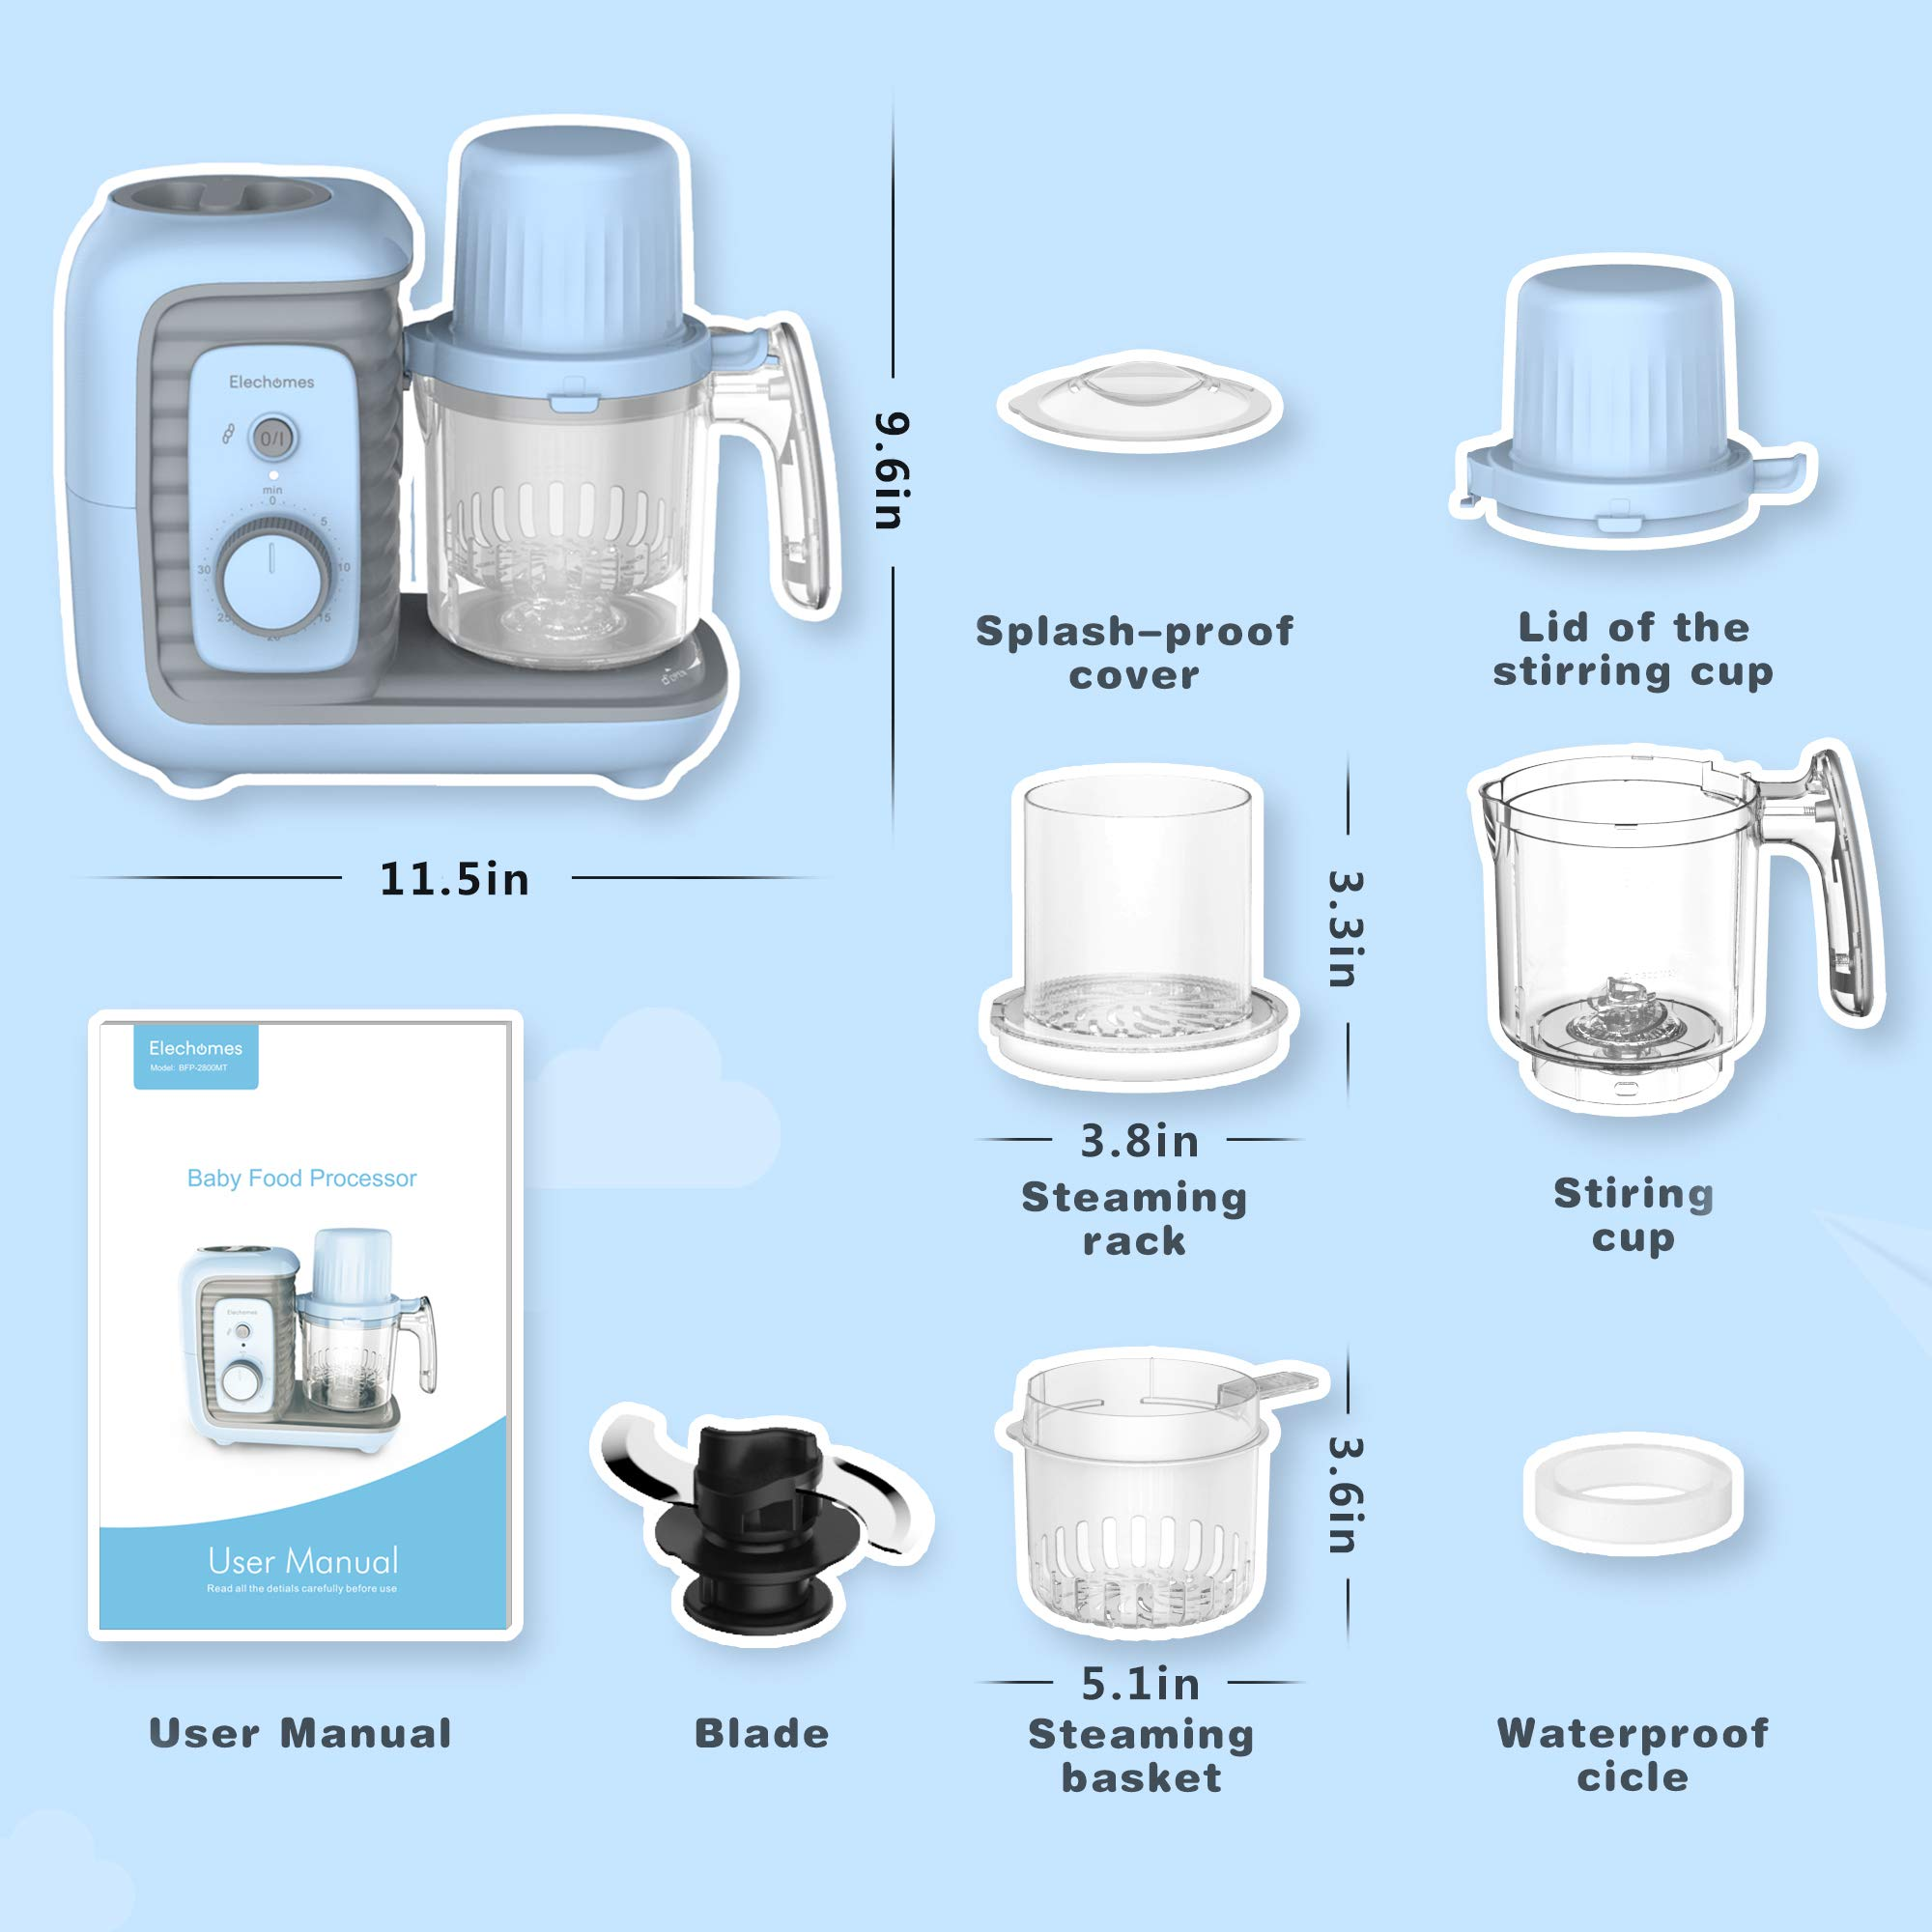 Elechomes Baby Food Maker Processor, Double Steam Basket Cooker with Timer, Blender, Steamer for Baby Infants Toddlers Food by Elechomes (Image #7)